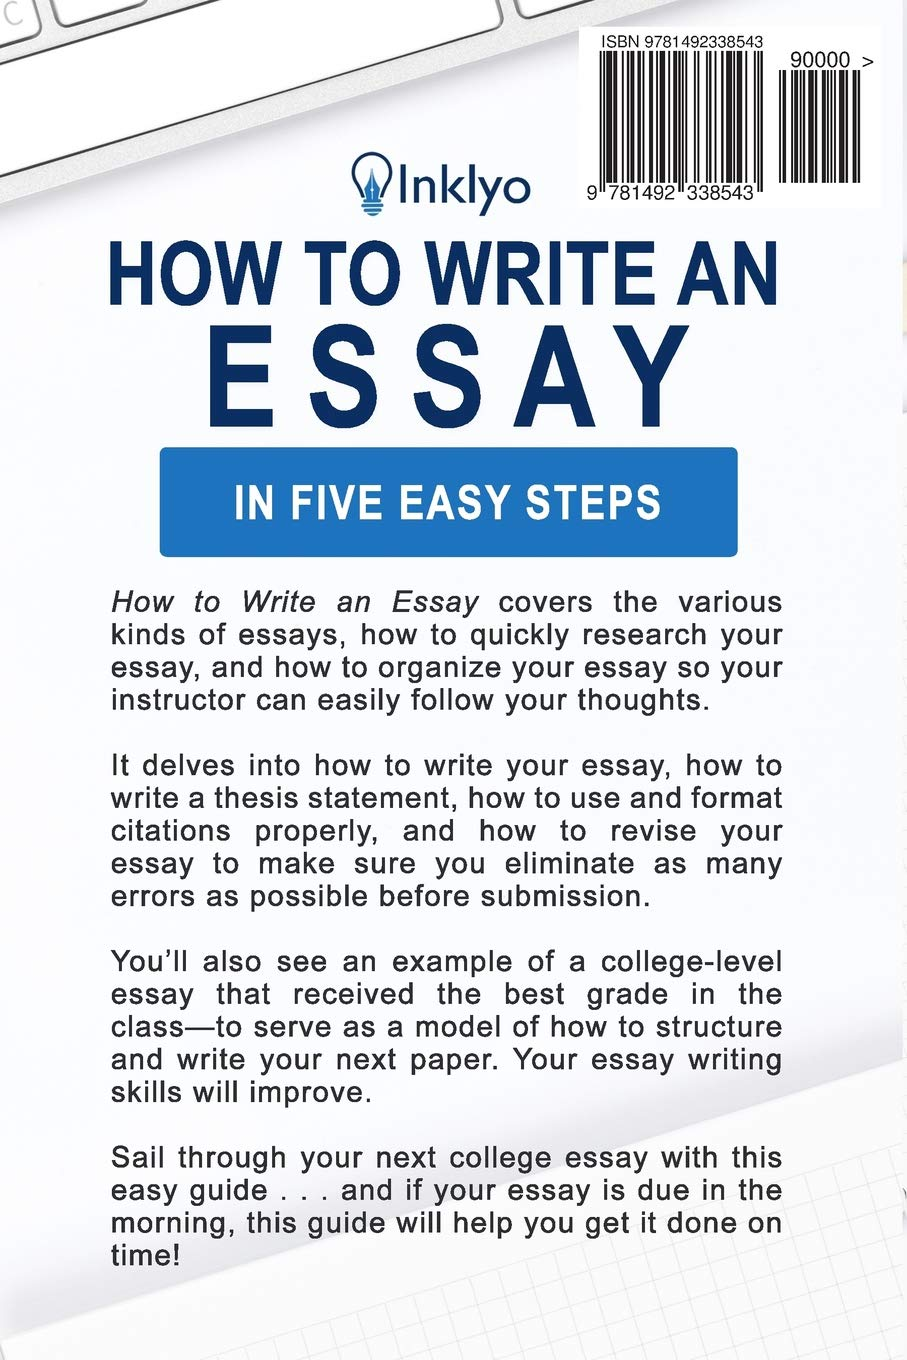 002 How To Write An Essay Example Shocking Conclusion About Yourself For College Examples Full